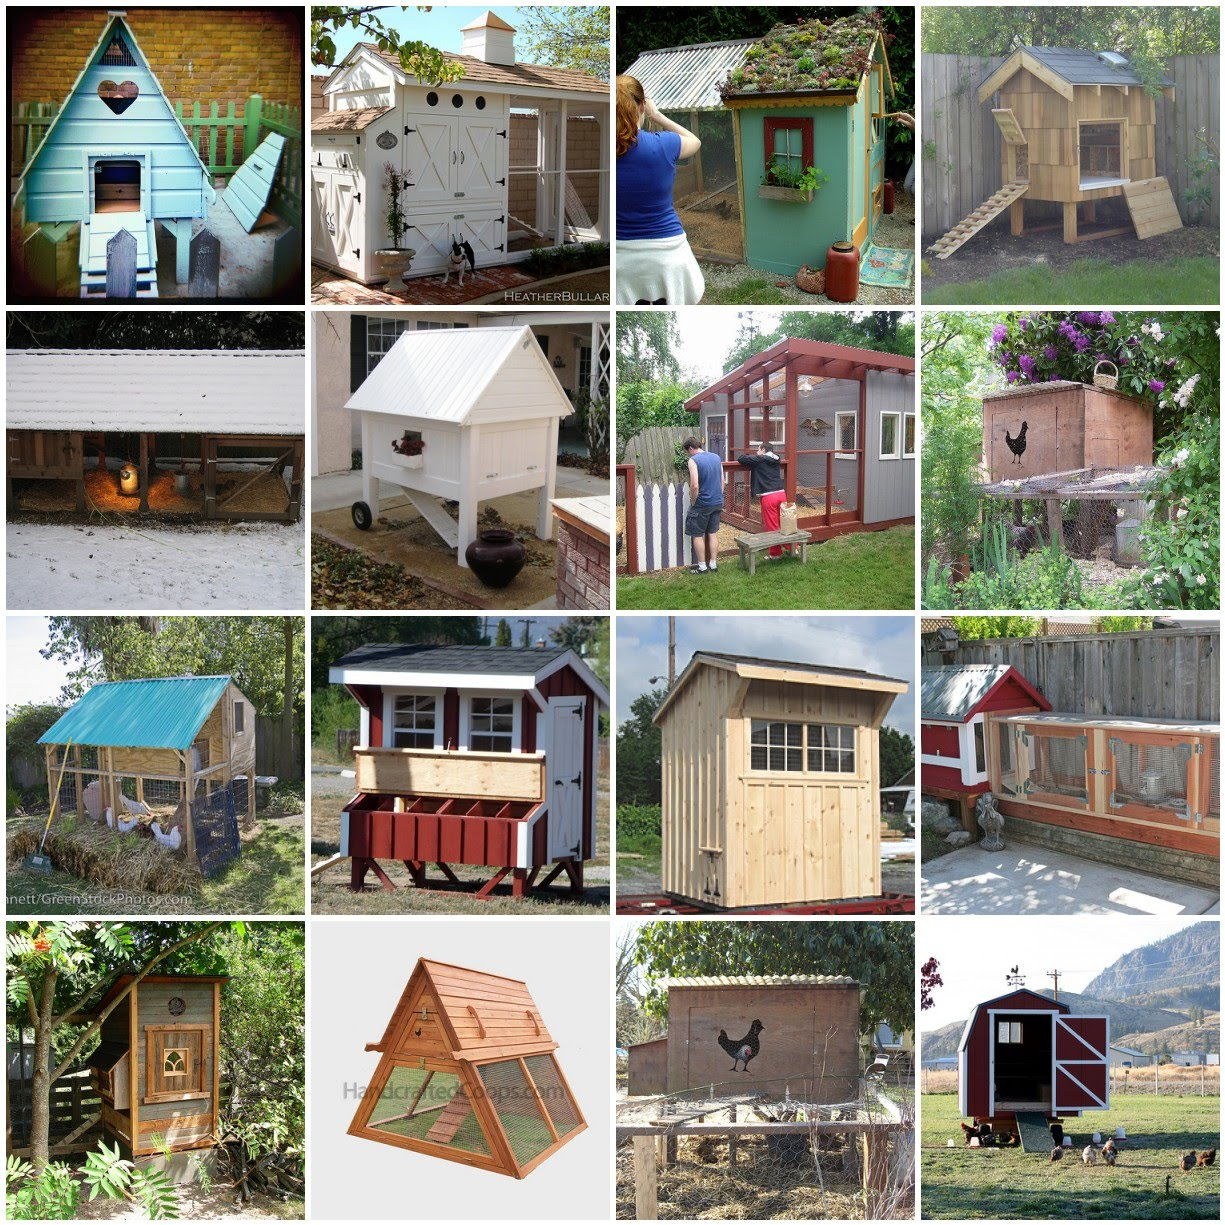 6 considerations before u start a chicken coop the - Chicken coop blueprints designs plans ...